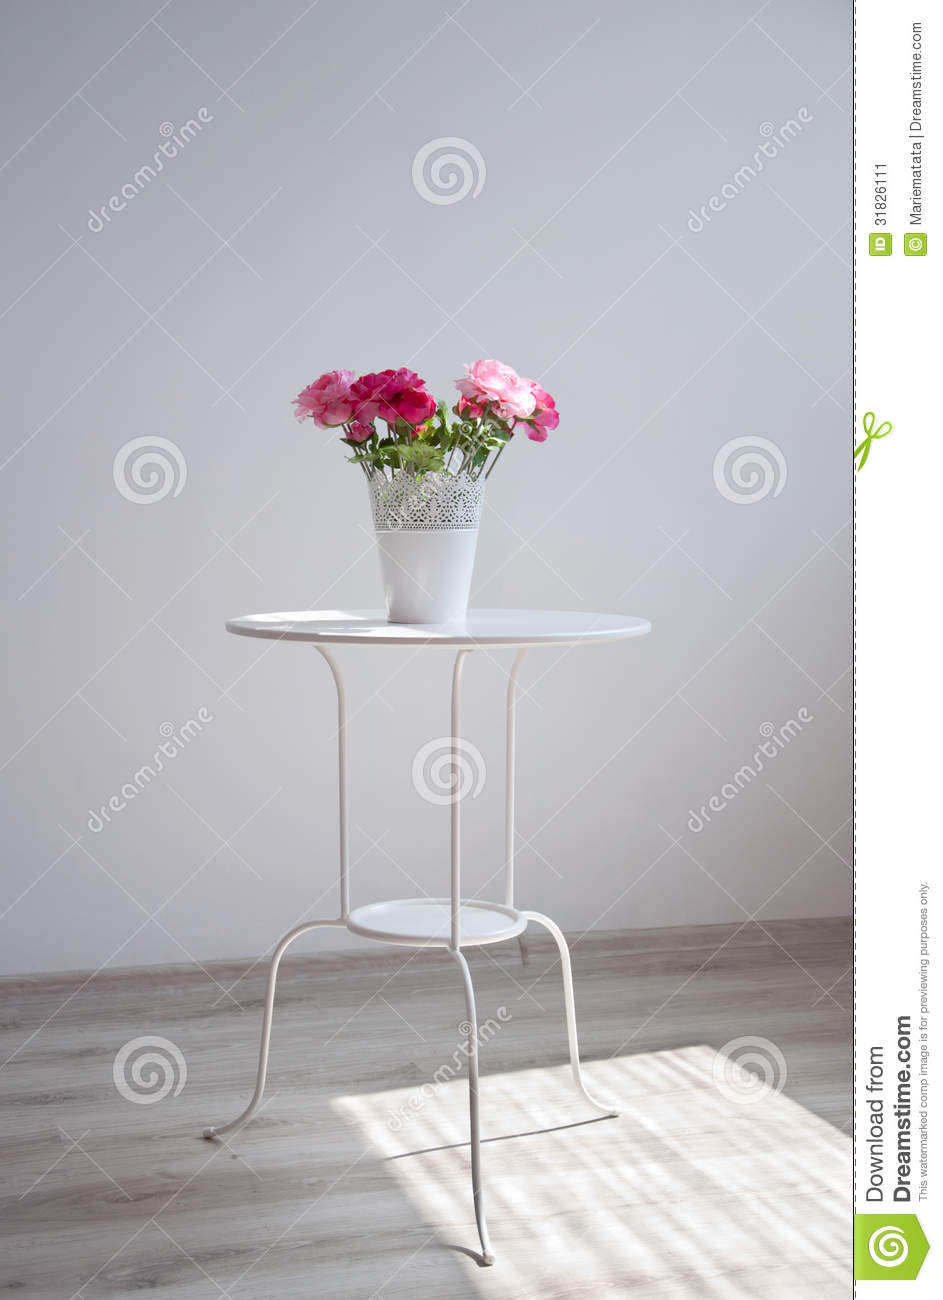 Flowers On The Table Stock Image Image 31826111